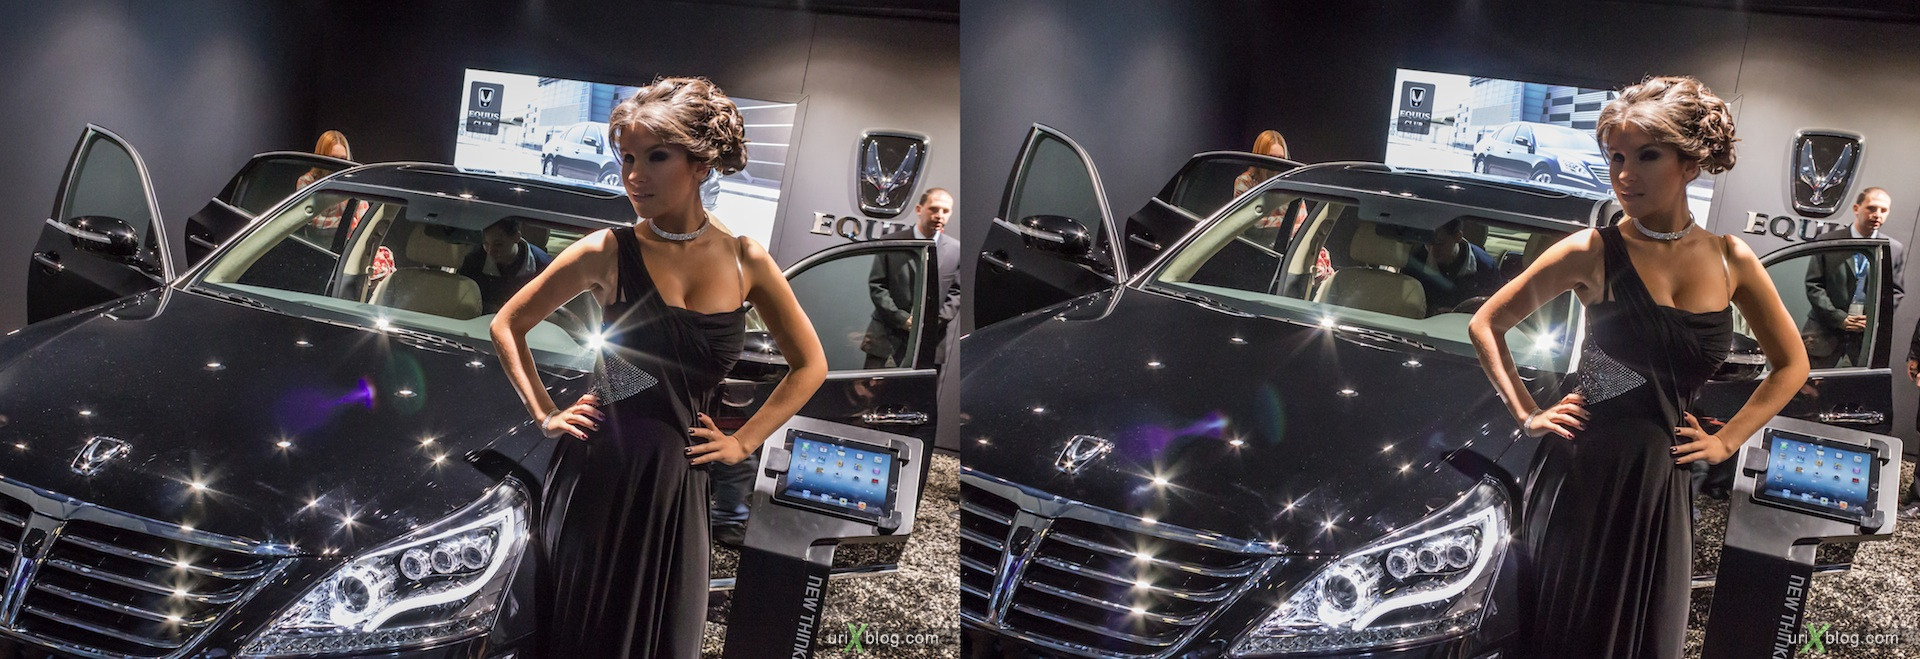 2012, Hyundai Equus, girl, model, Moscow International Automobile Salon, auto show, 3D, stereo pair, cross-eyed, crossview